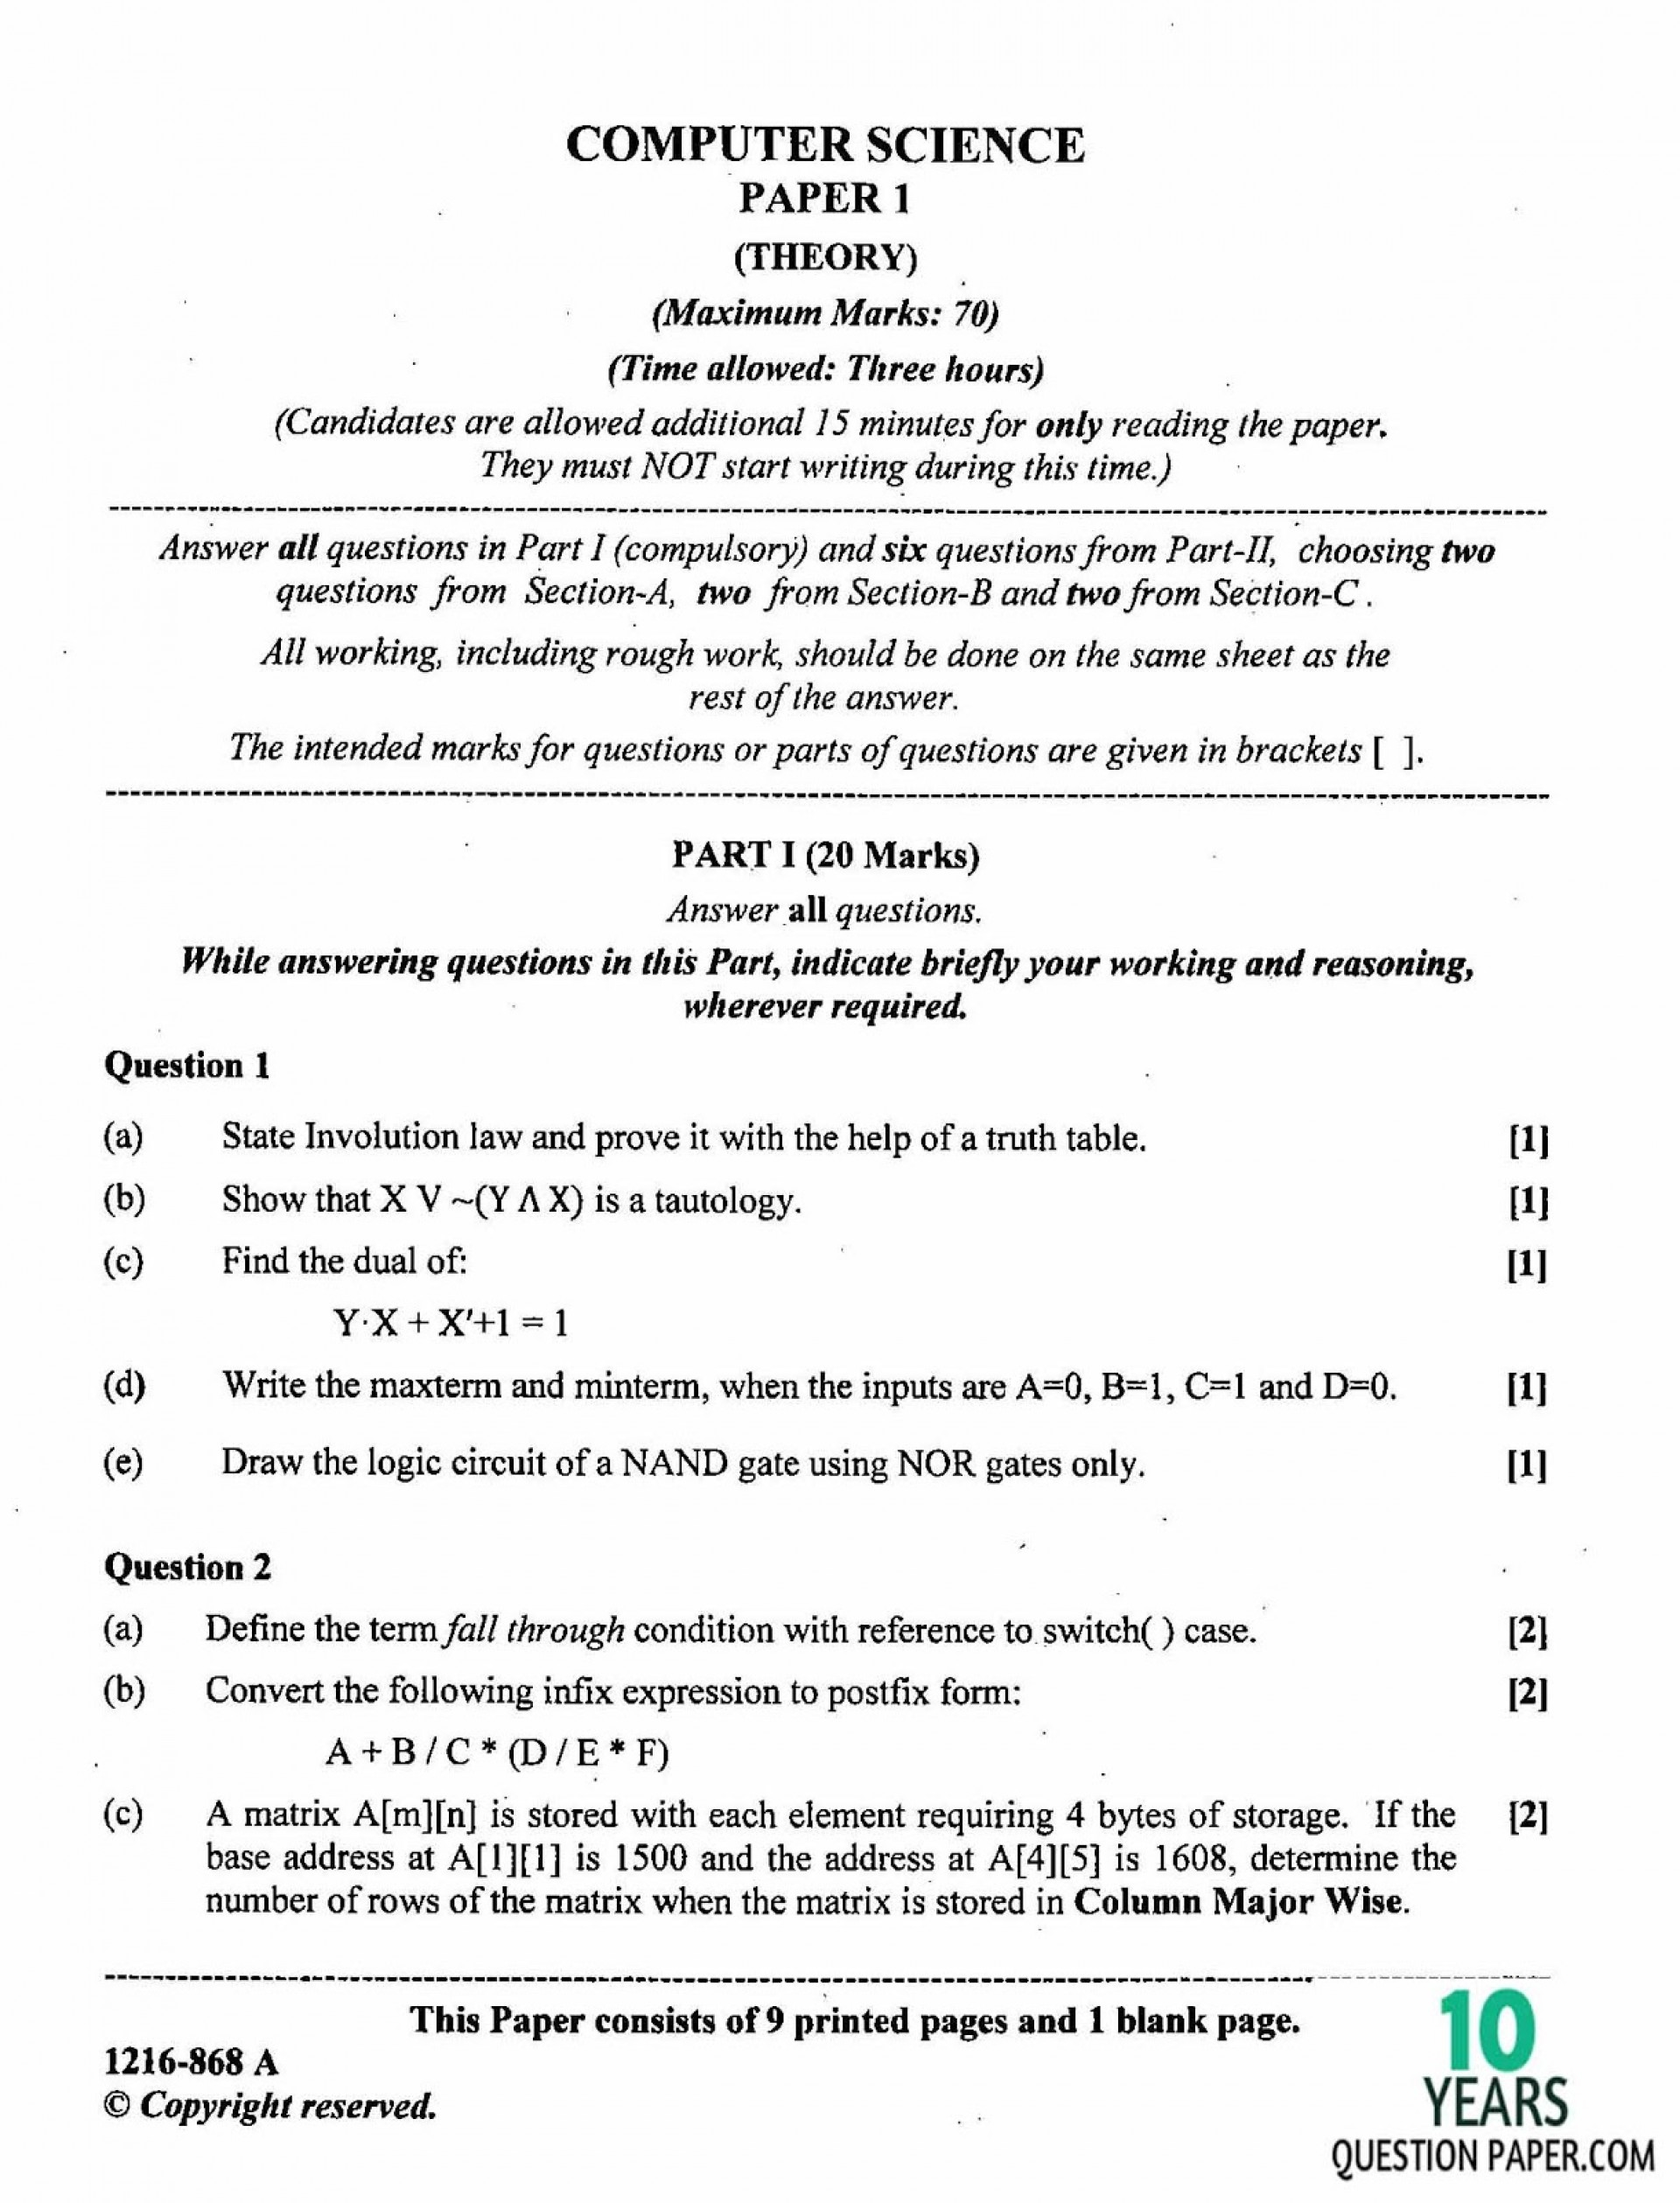 018 Research Paper Computer Science Papers Free Isc Science2b Theory Class Xii Board Question Breathtaking Download Pdf 1920